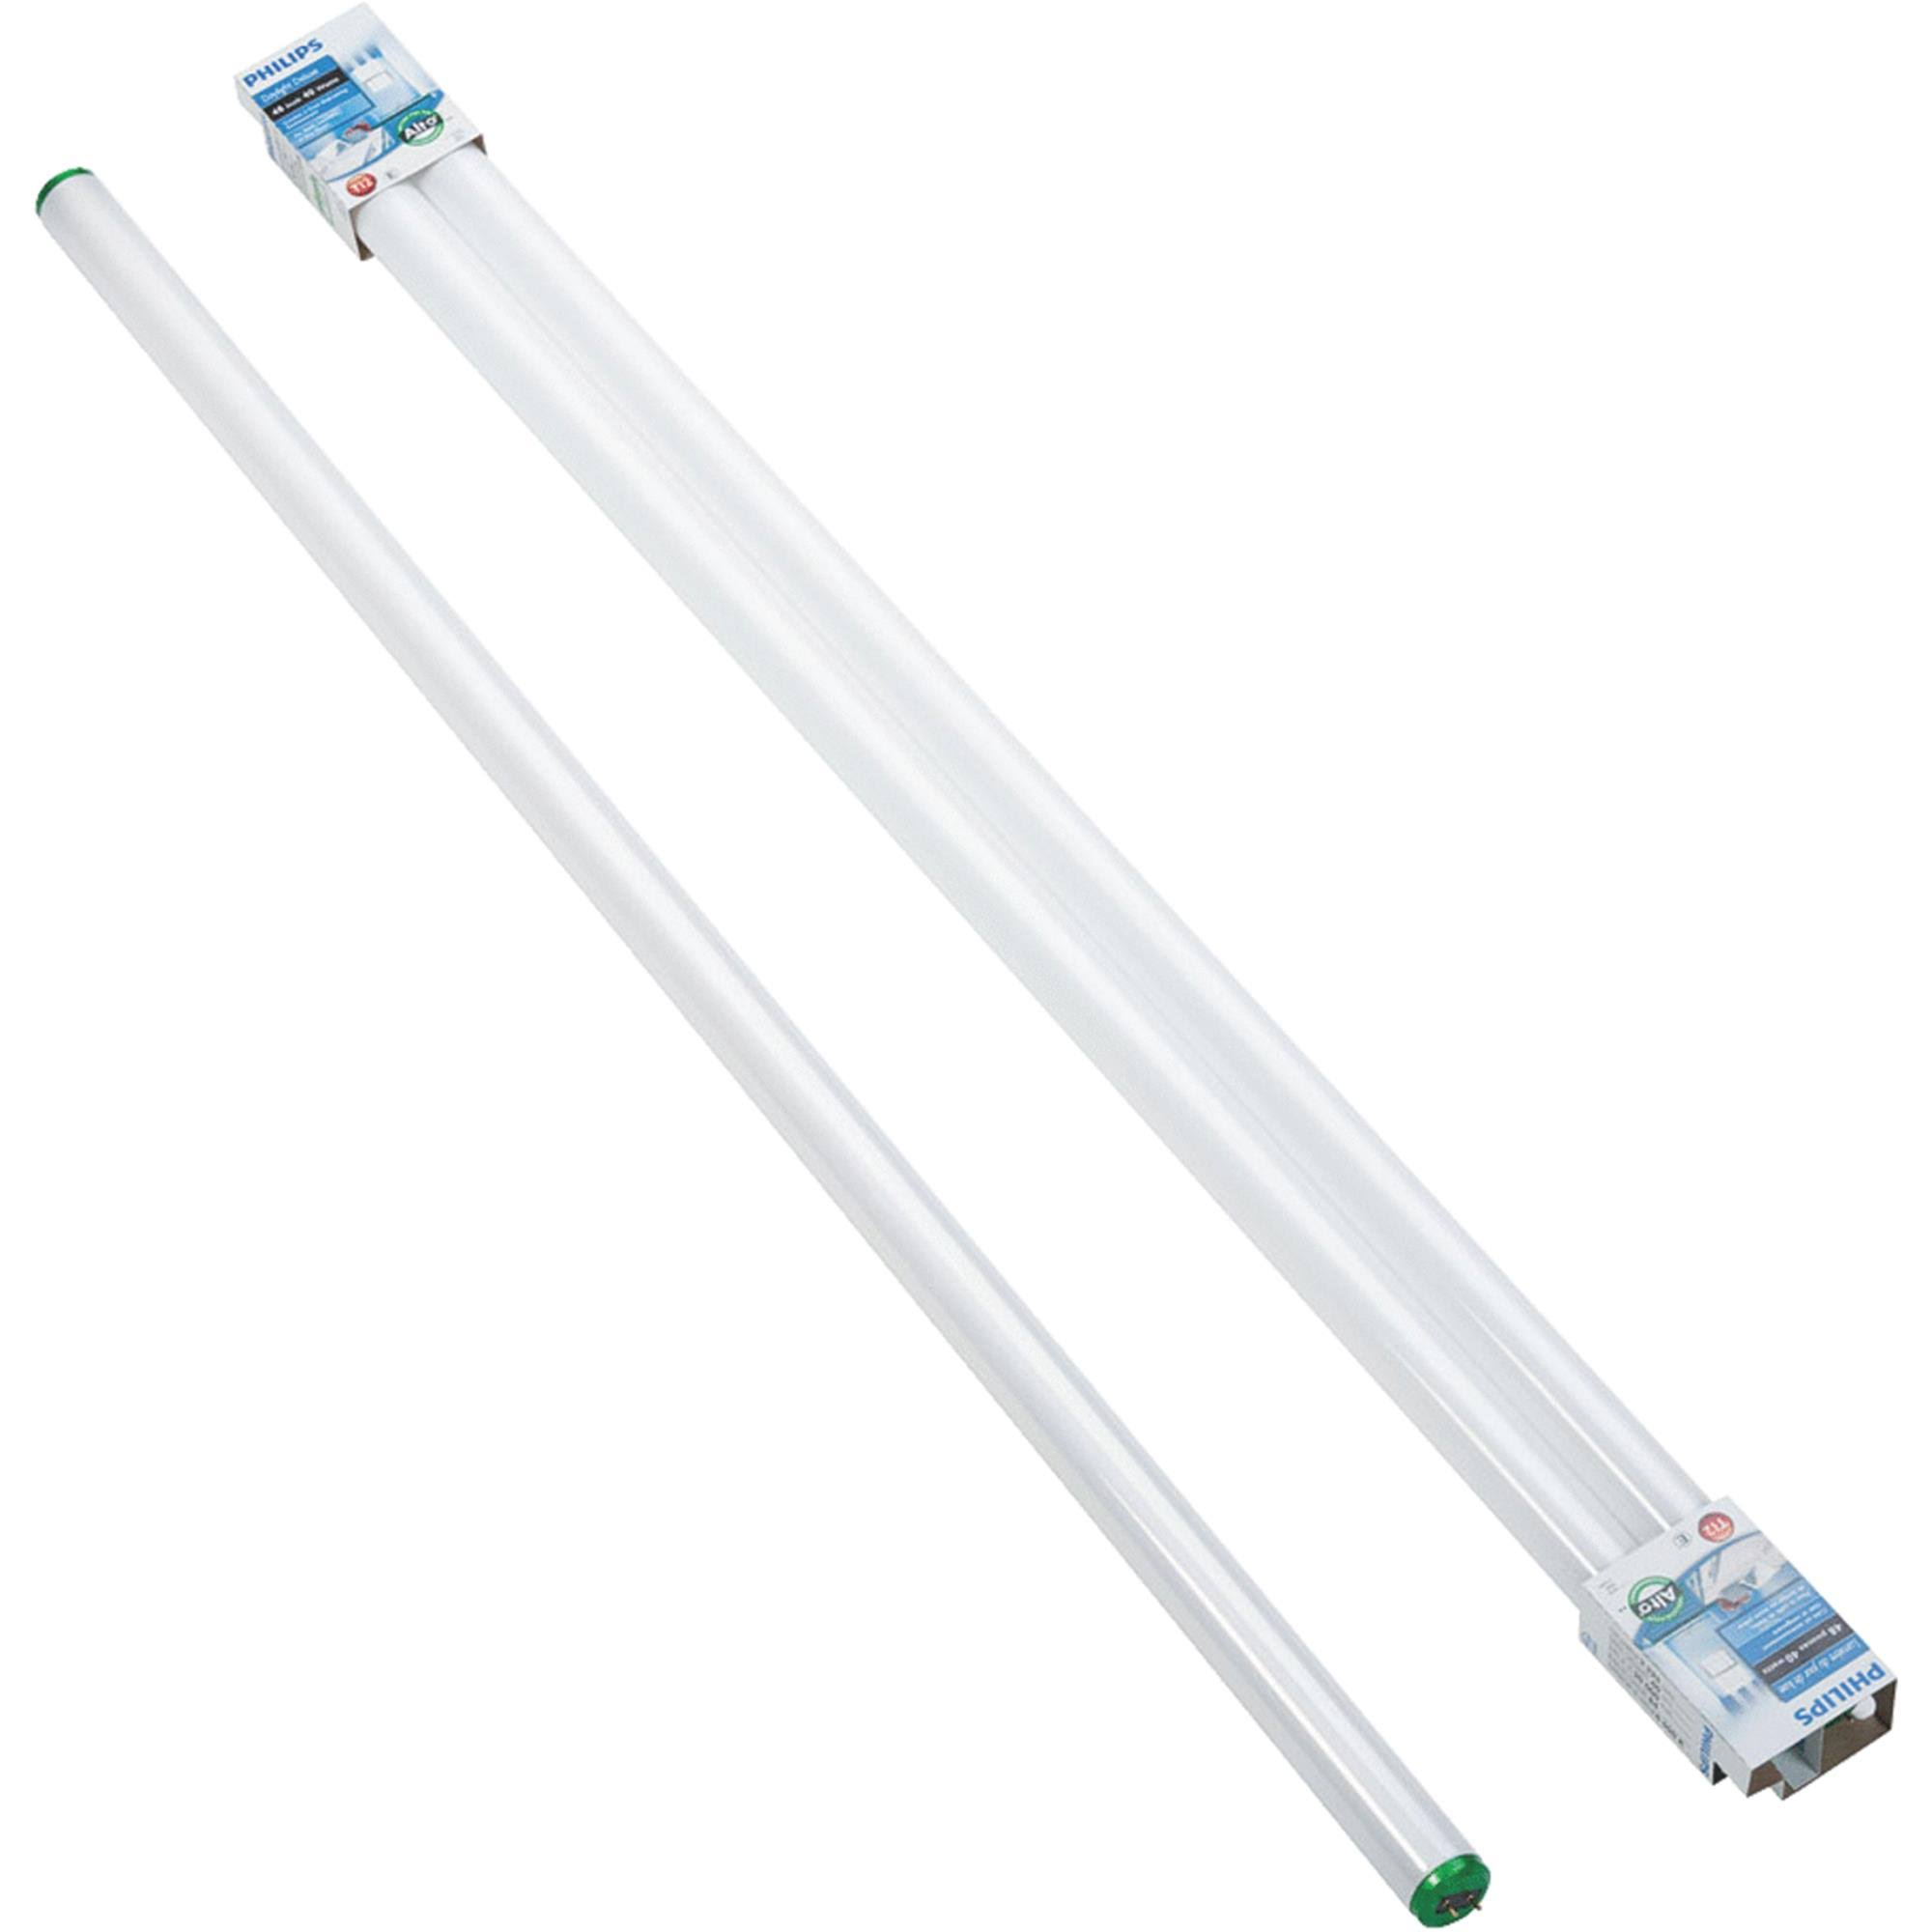 Philips 543421 40-Watt 4 ft. Linear T12 Alto Fluorescent Tube Light Bulb Cool White (4100K) (2-Pack)